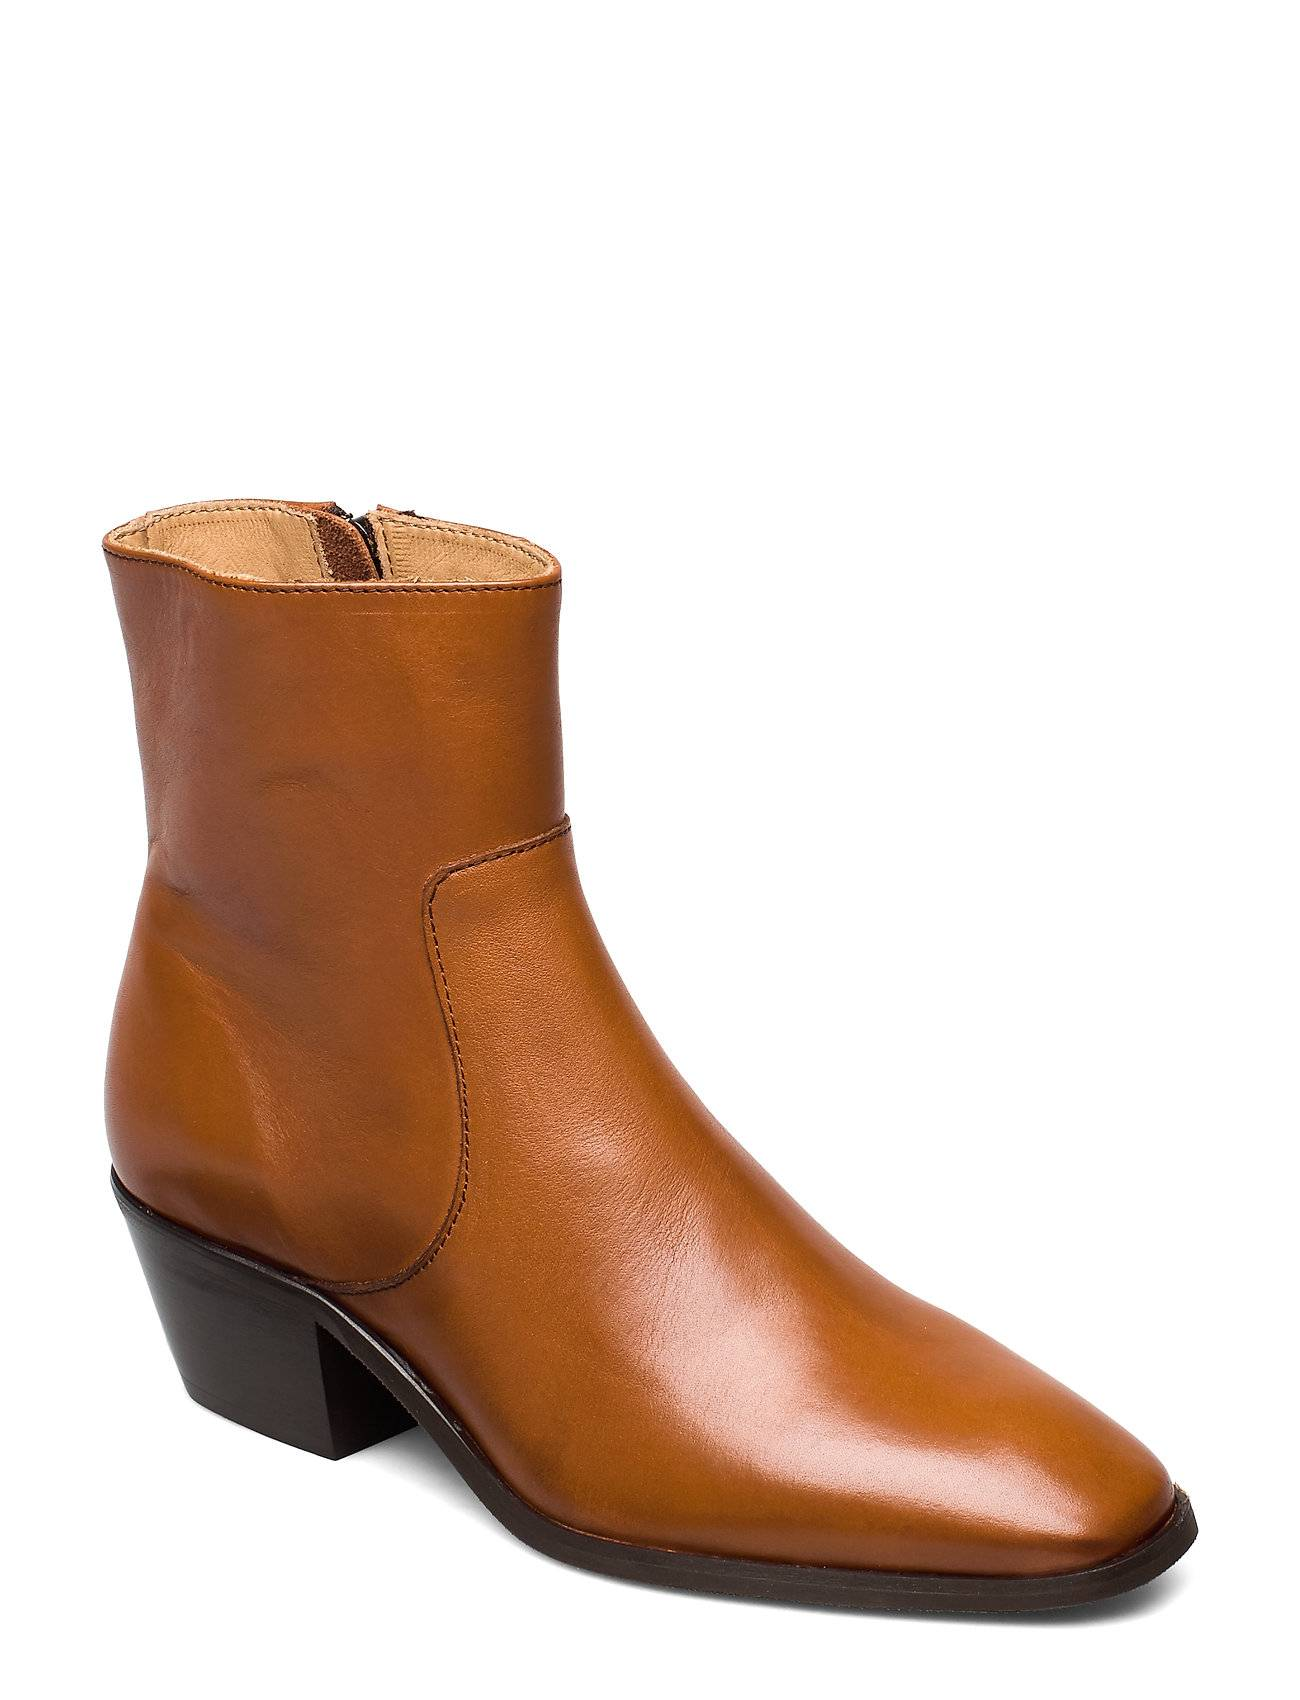 ANNY NORD Anny Drop Your Gun Shoes Boots Ankle Boots Ankle Boots With Heel Ruskea